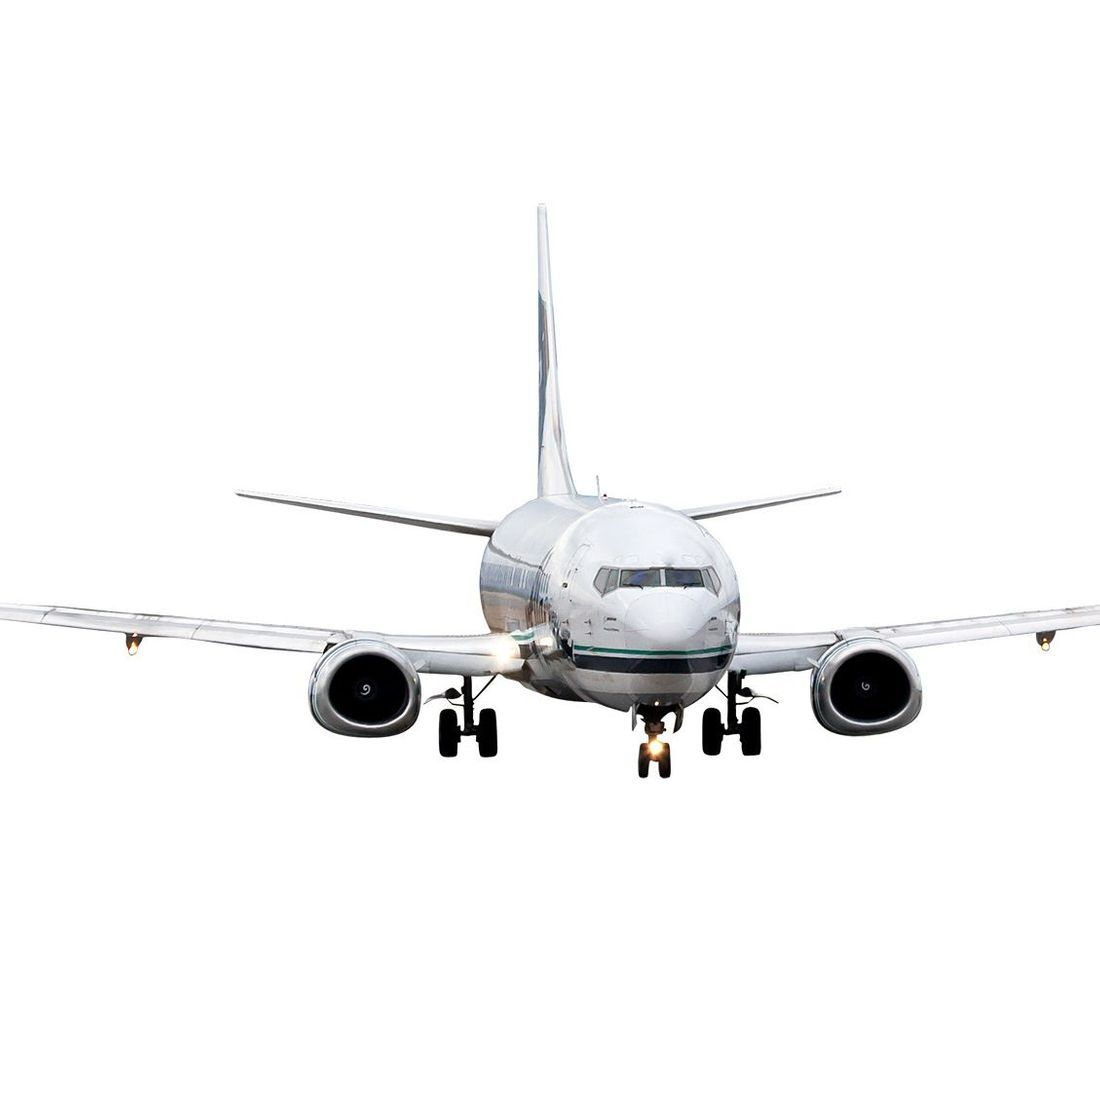 aircraft landing on white background